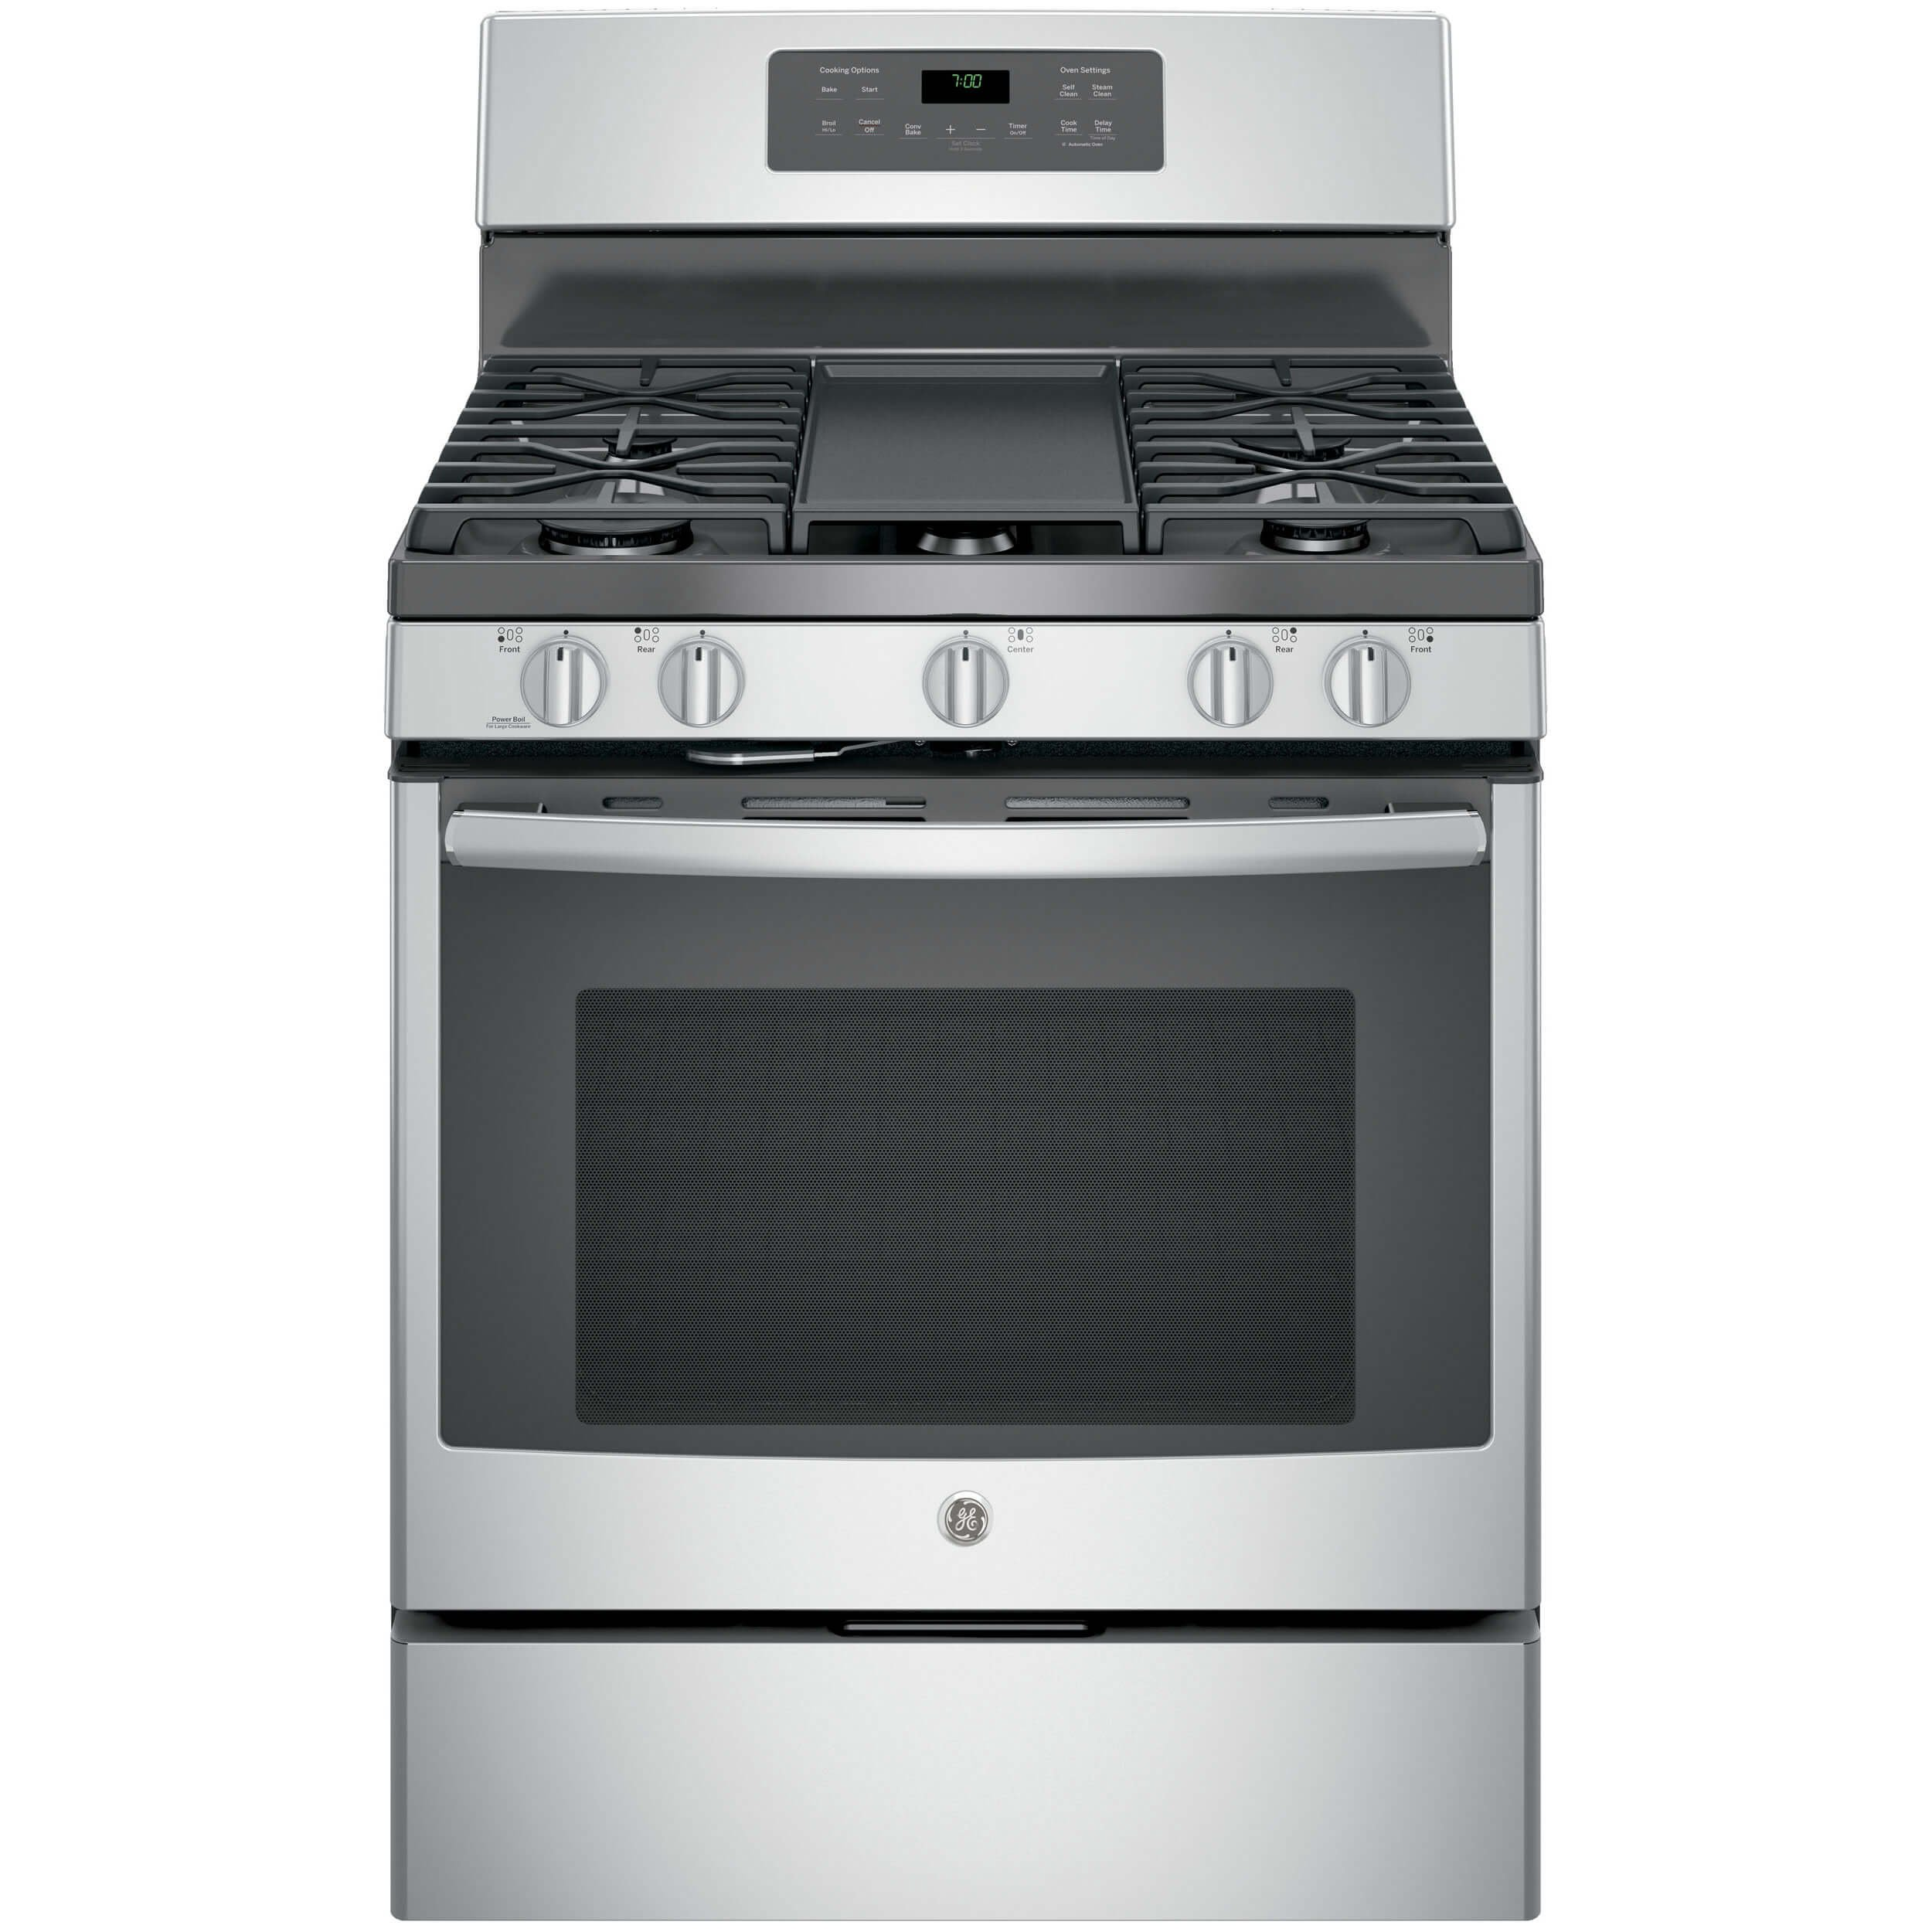 GE JGB700SEJSS 30'' Stainless Steel Gas Sealed Burner Range - Convection